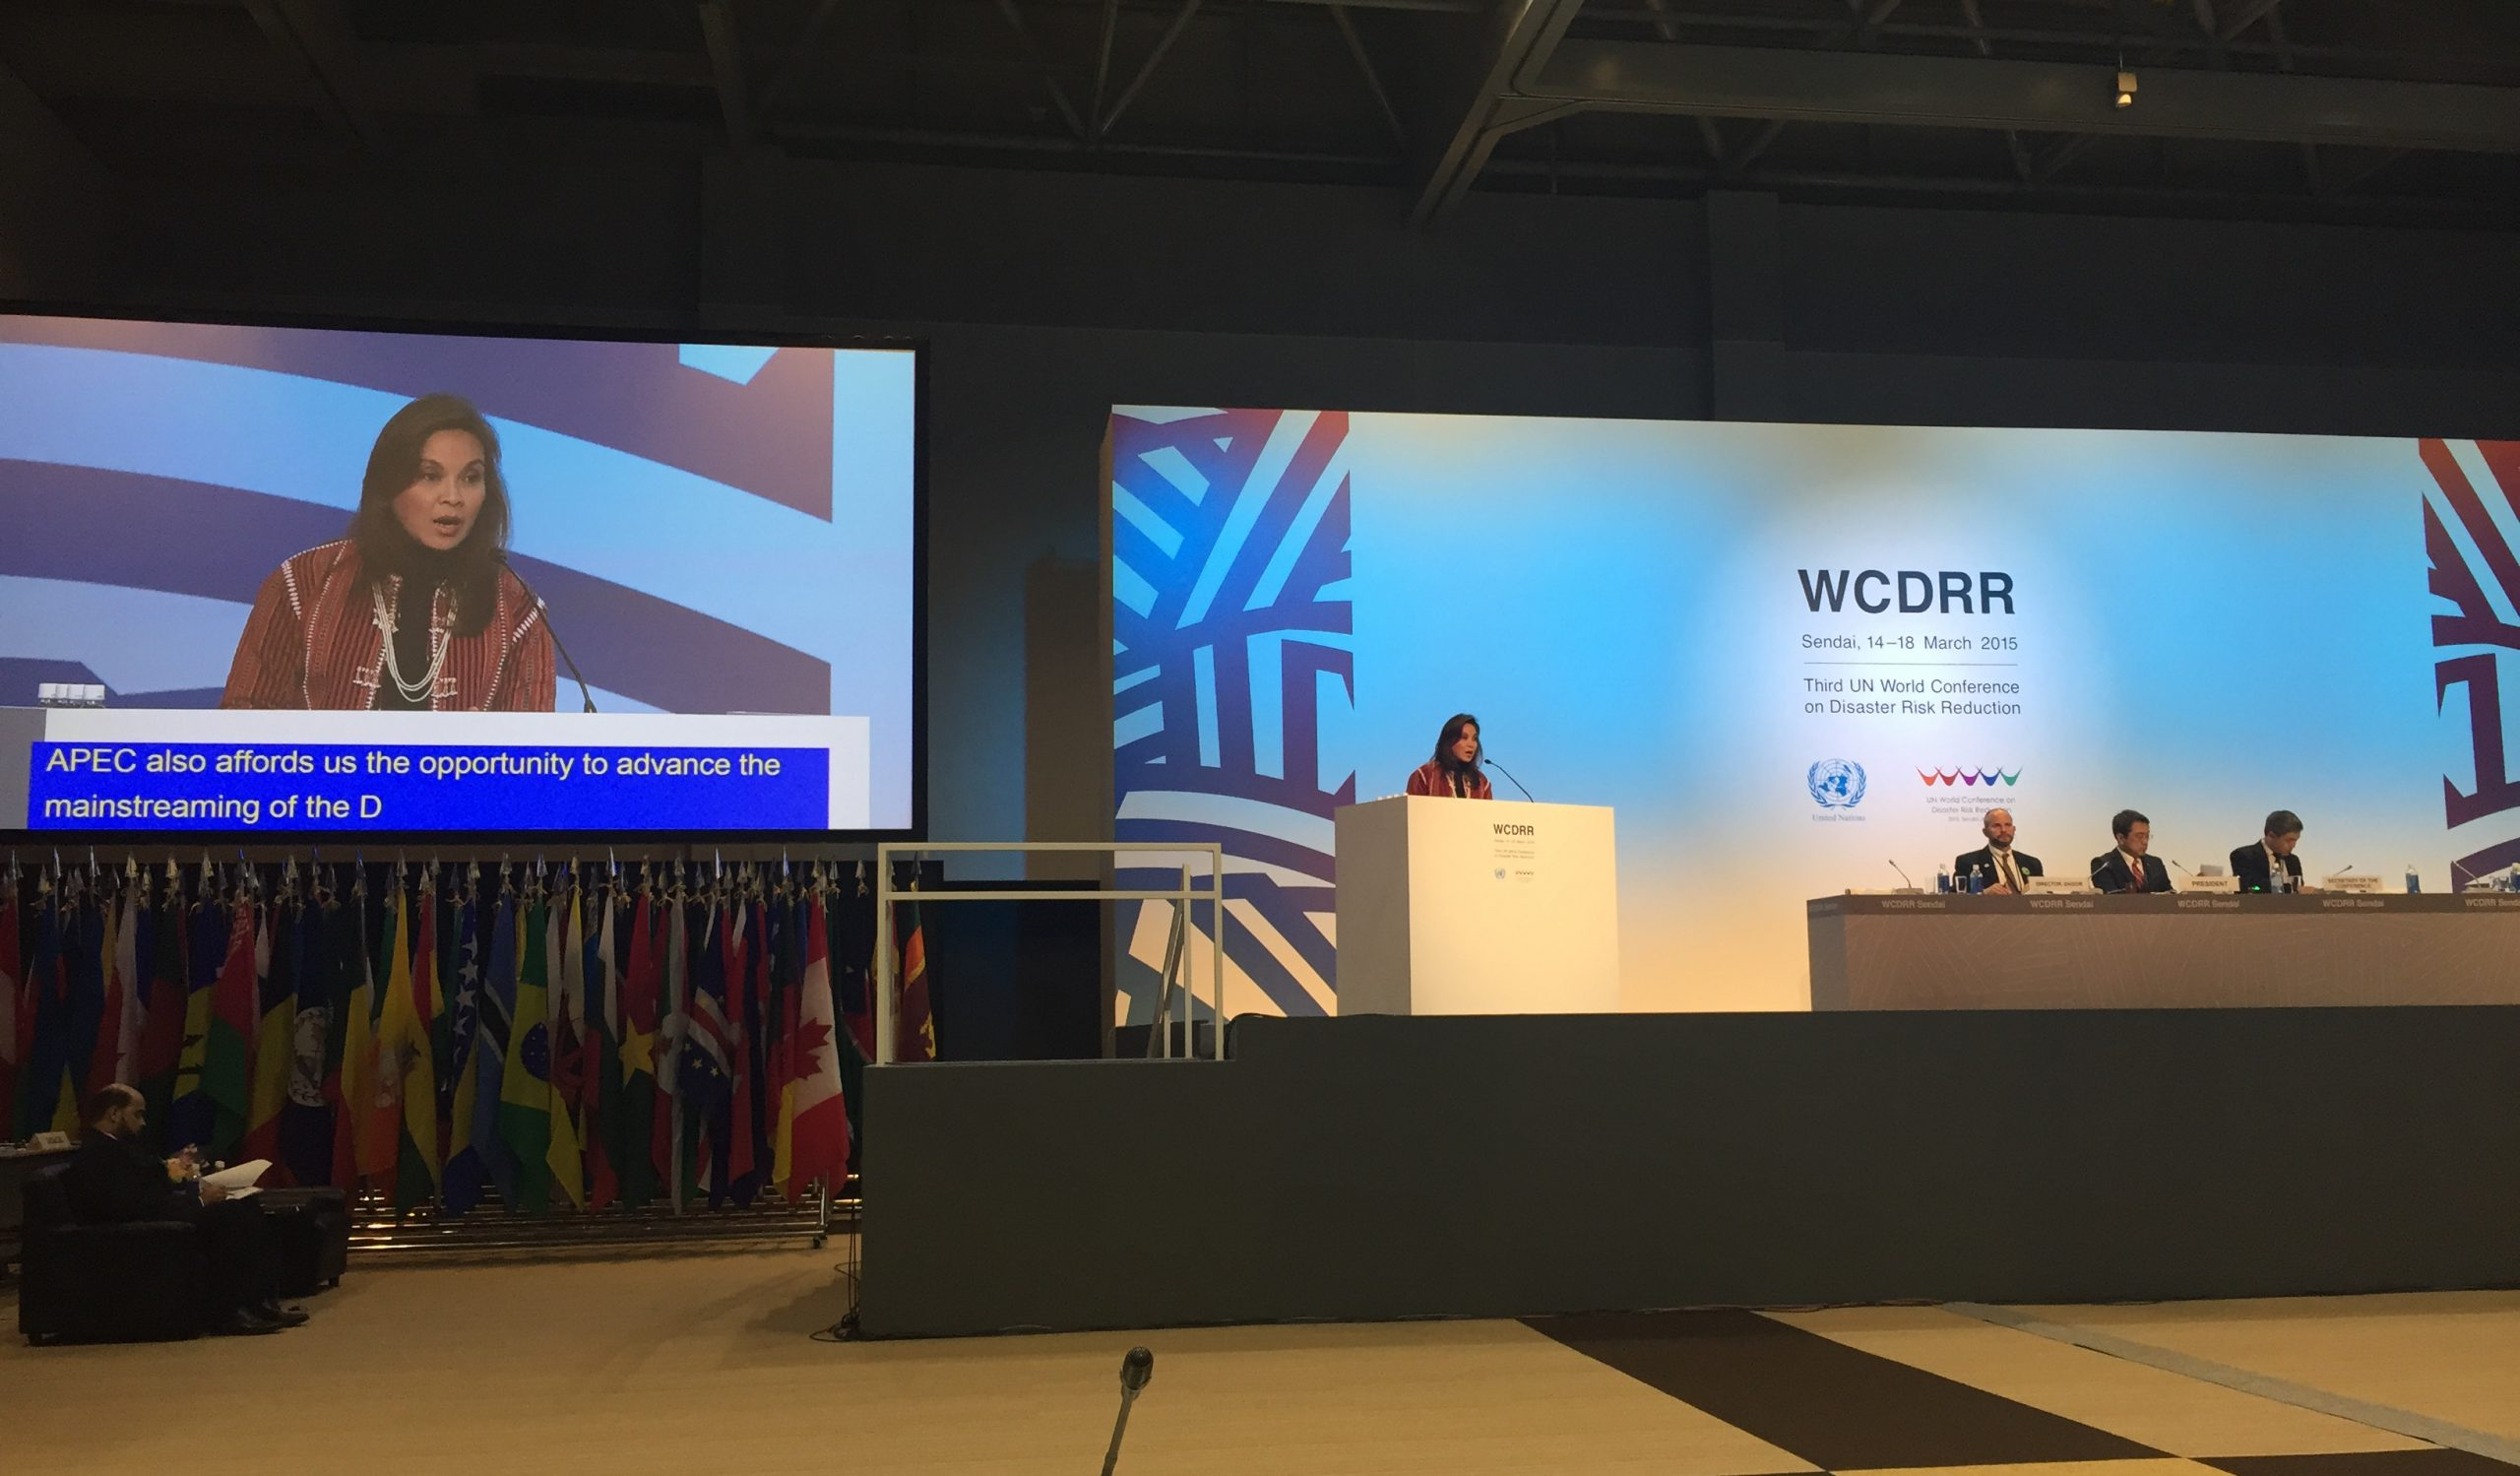 Legarda Delivers PHL Statement at 3rd WCDRR